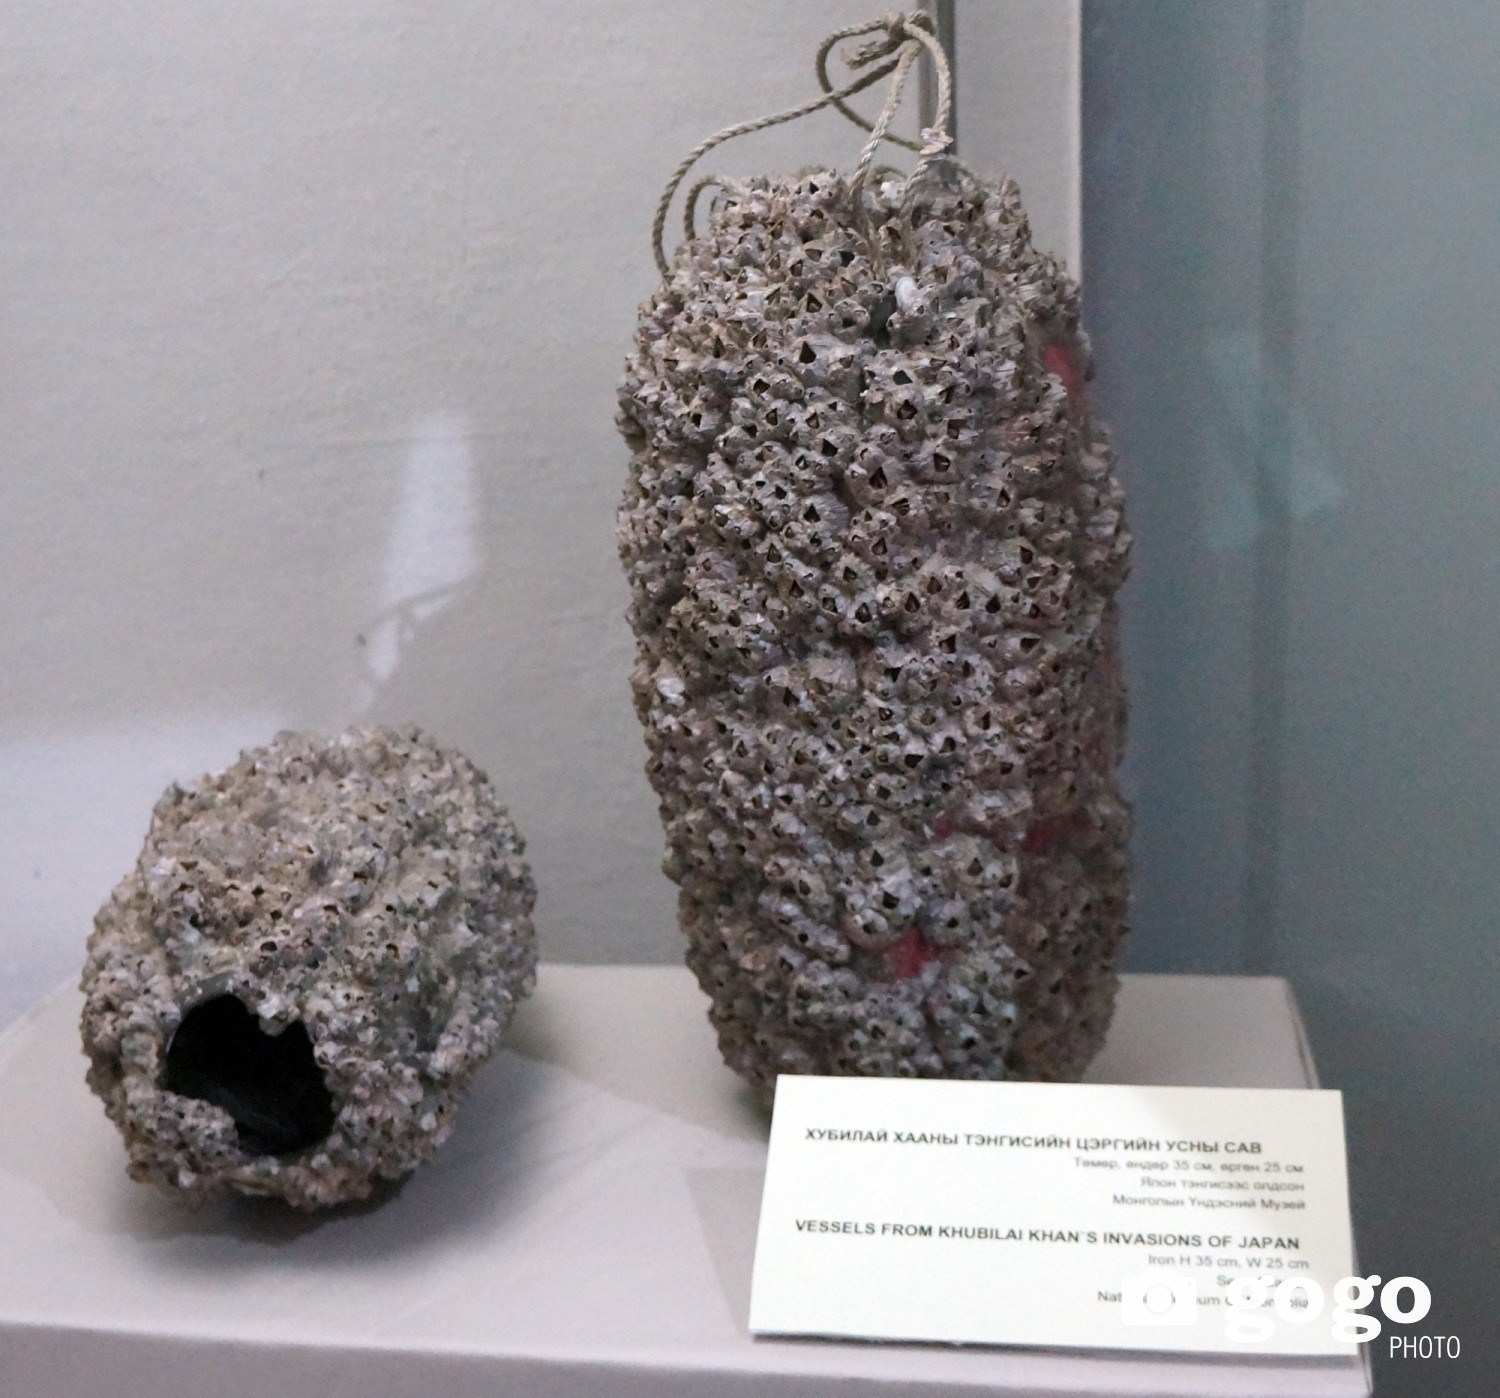 Vessels from Khubilai's invasions of Japan /found from Japanese sea/